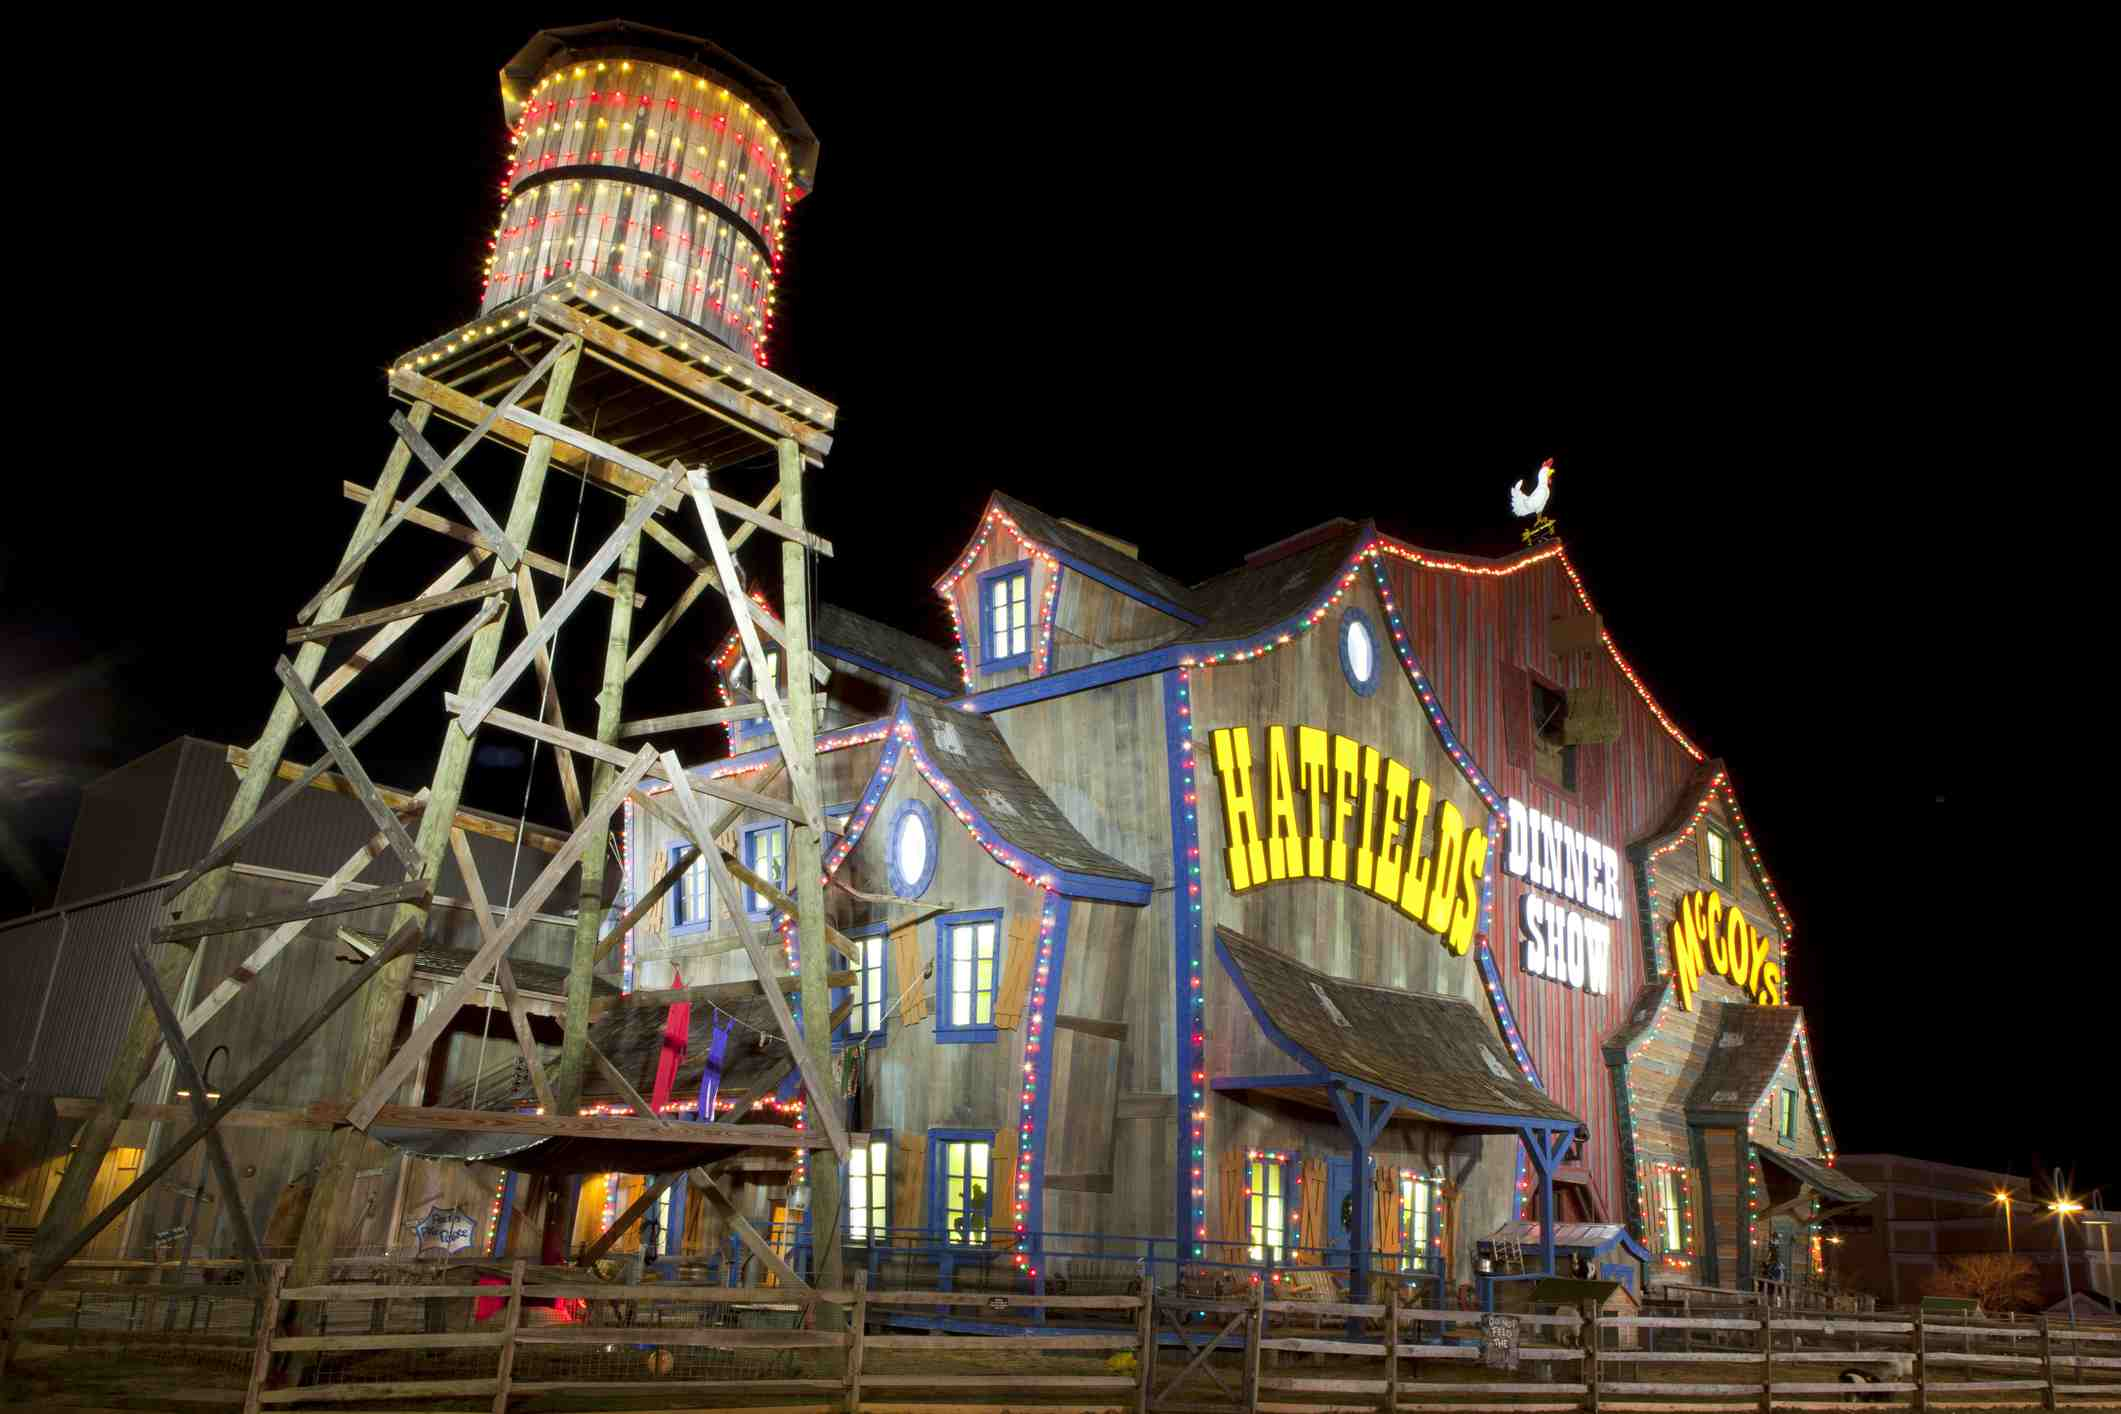 Hatfield & McCoy Dinner Show Theater in Pigeon Forge, Tennessee